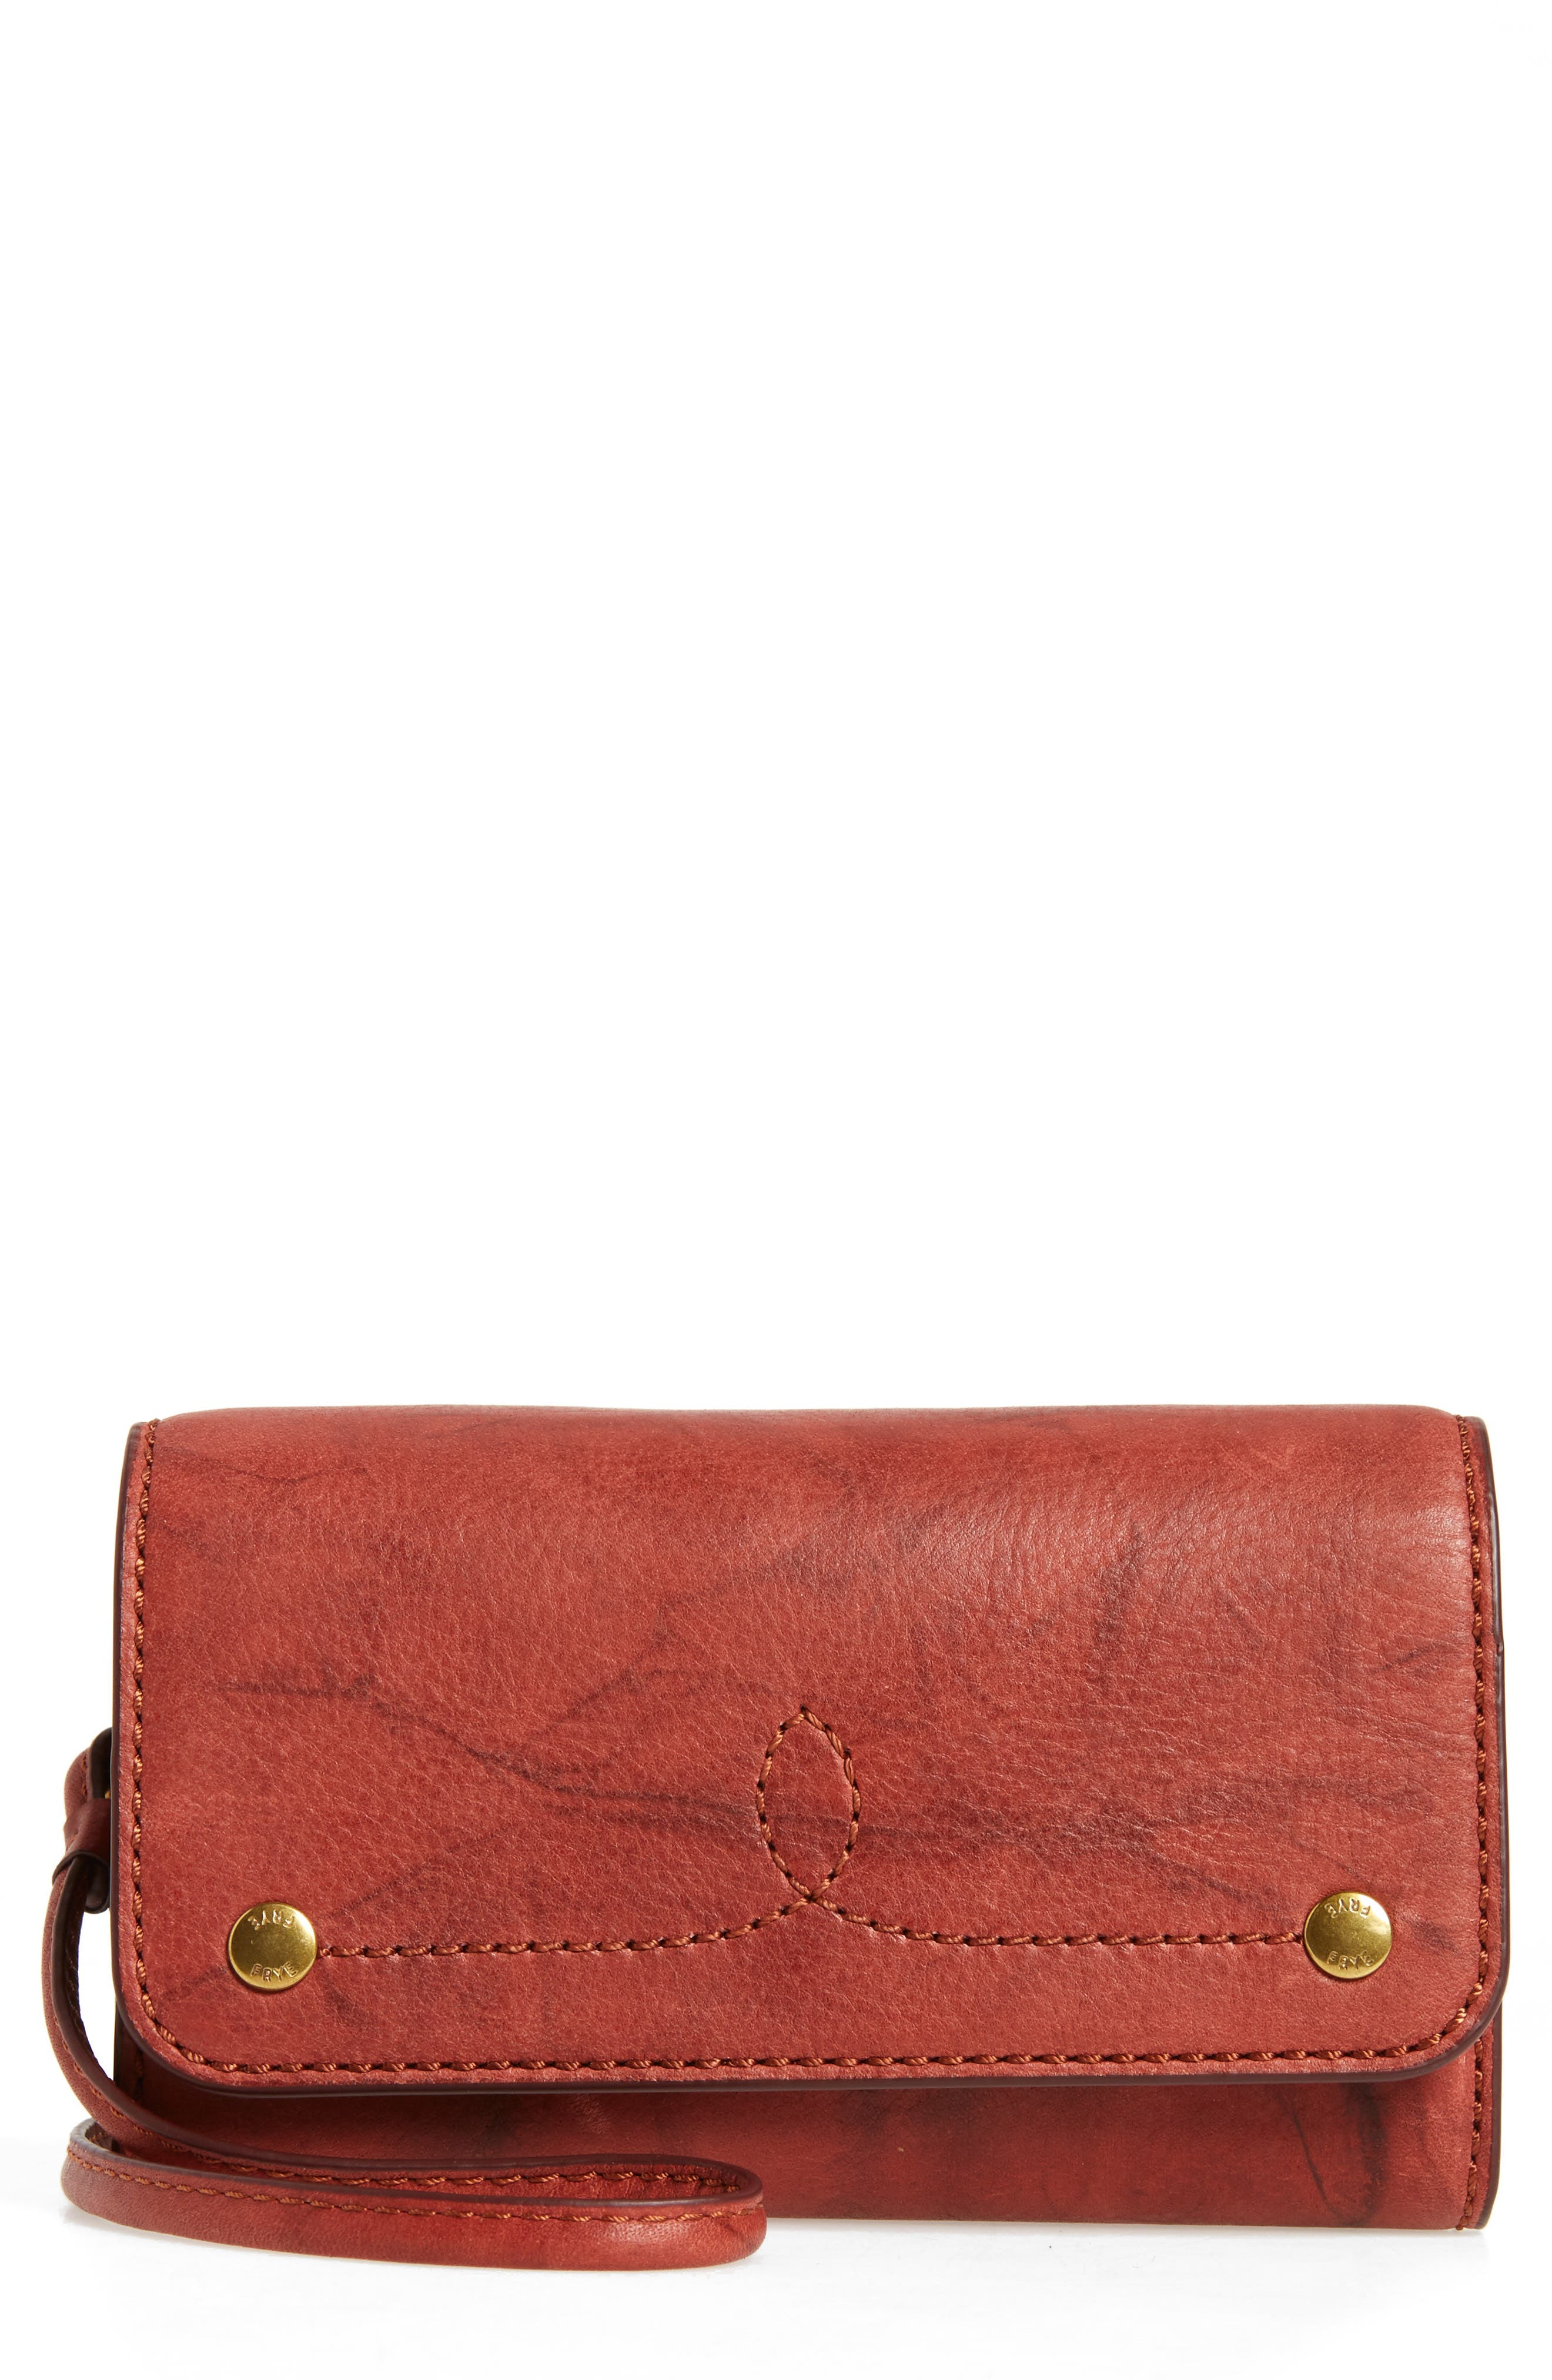 Campus Rivet Leather Smartphone Wallet with Crossbody Strap,                         Main,                         color, Burnt Red